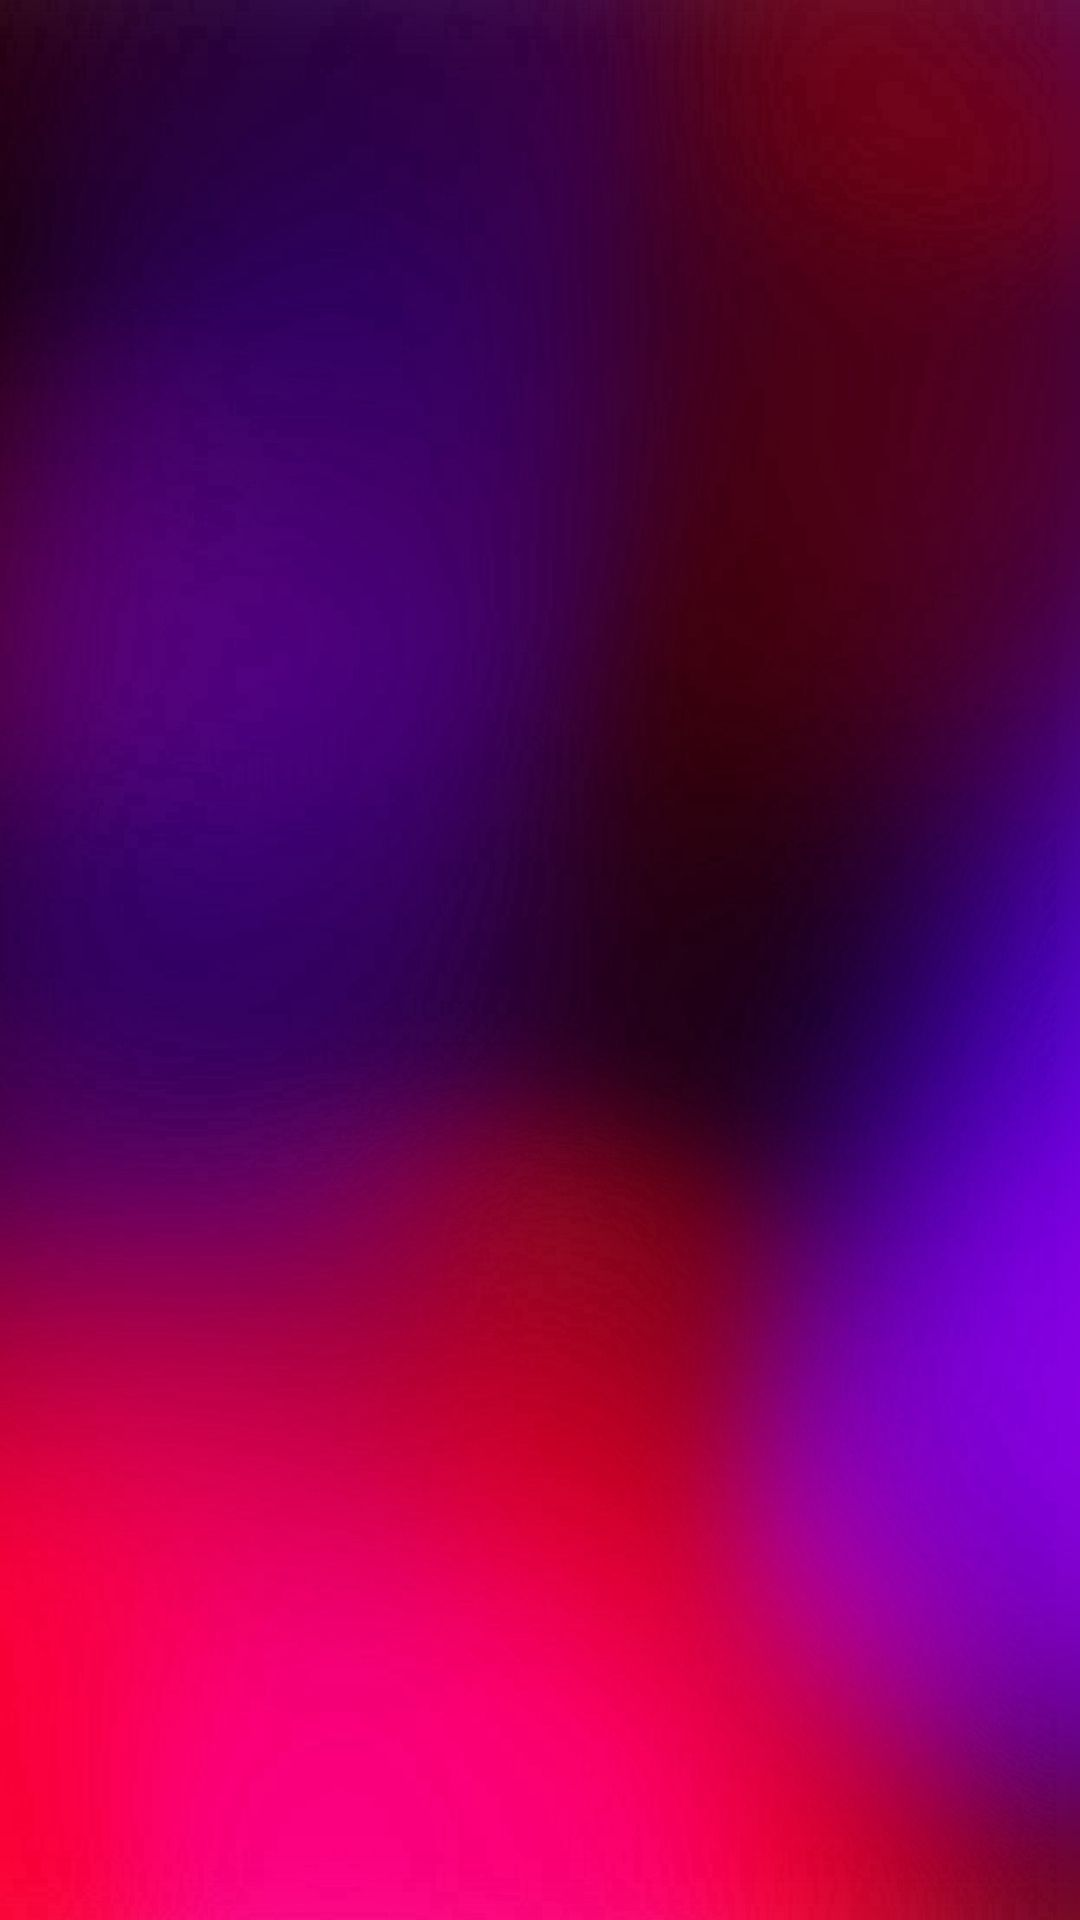 purple red party blur gradation #iphone #6 #wallpaper | iphone 6